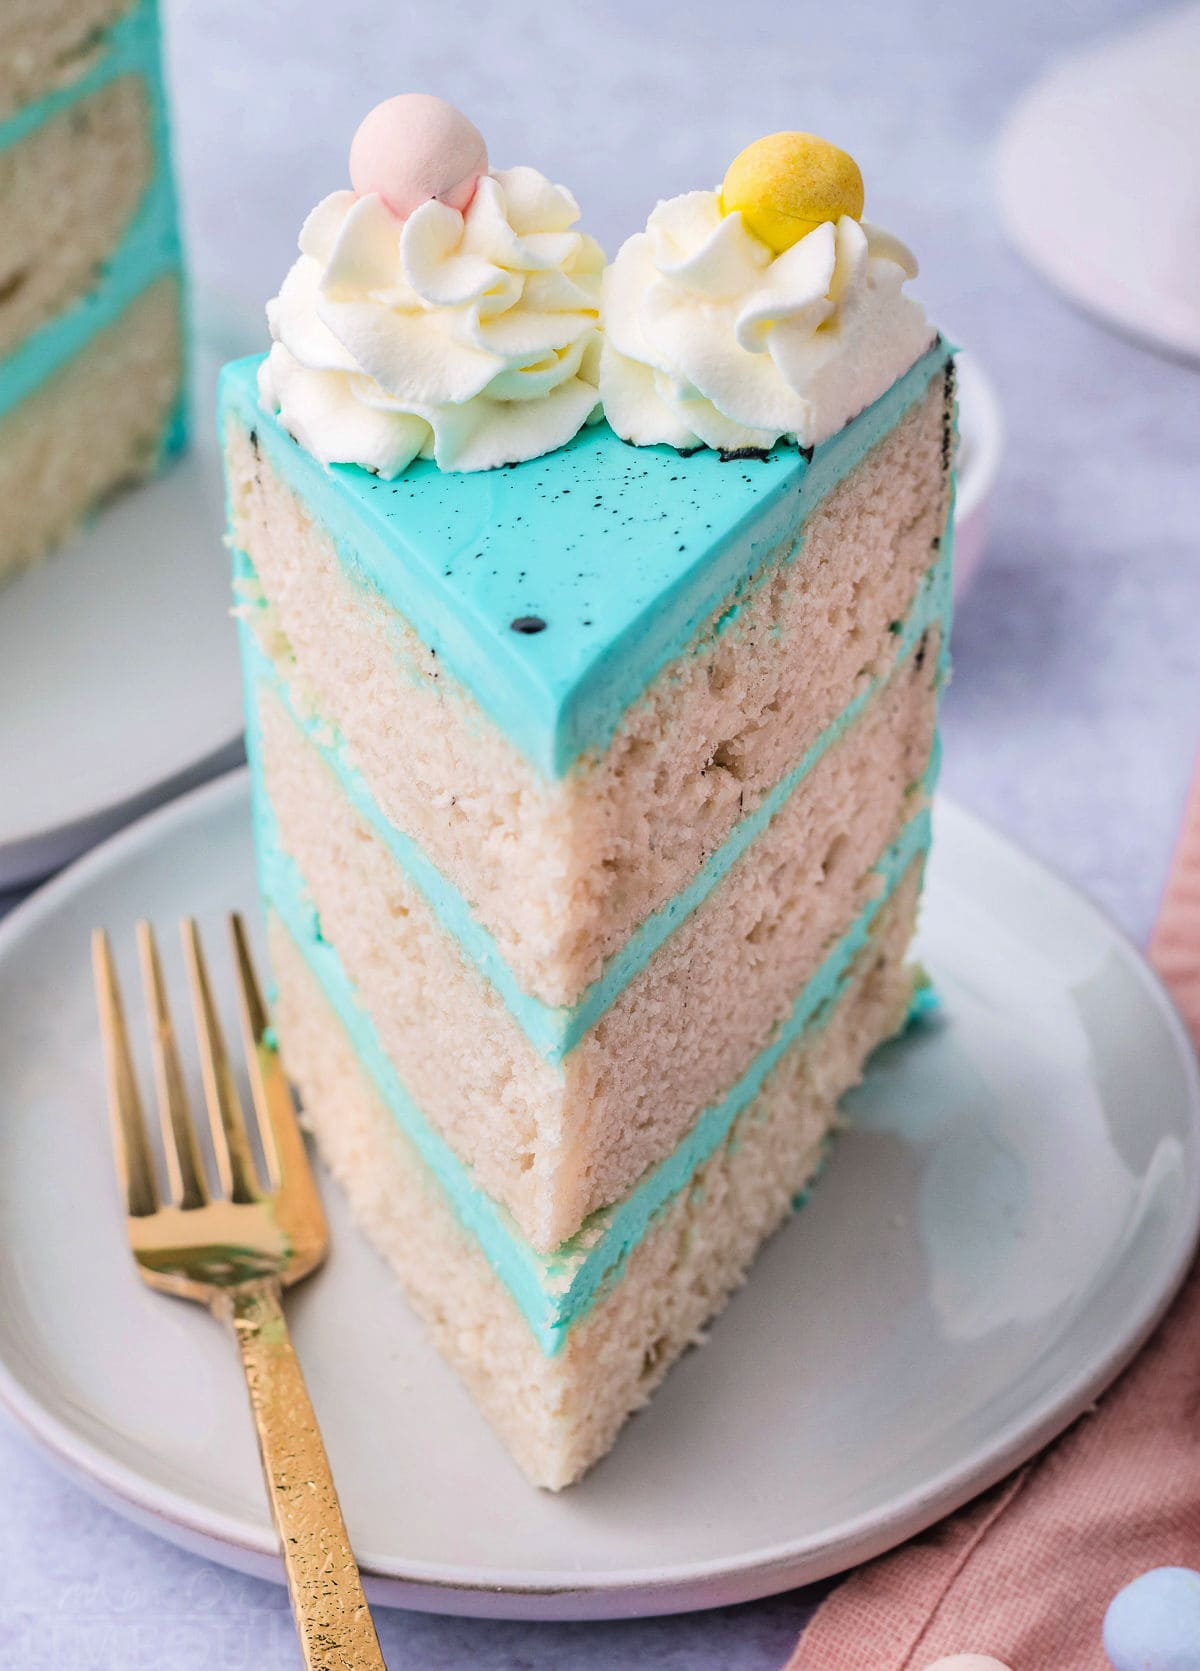 one slice of vanilla cake decorated with blue frosting and cadbury eggs.